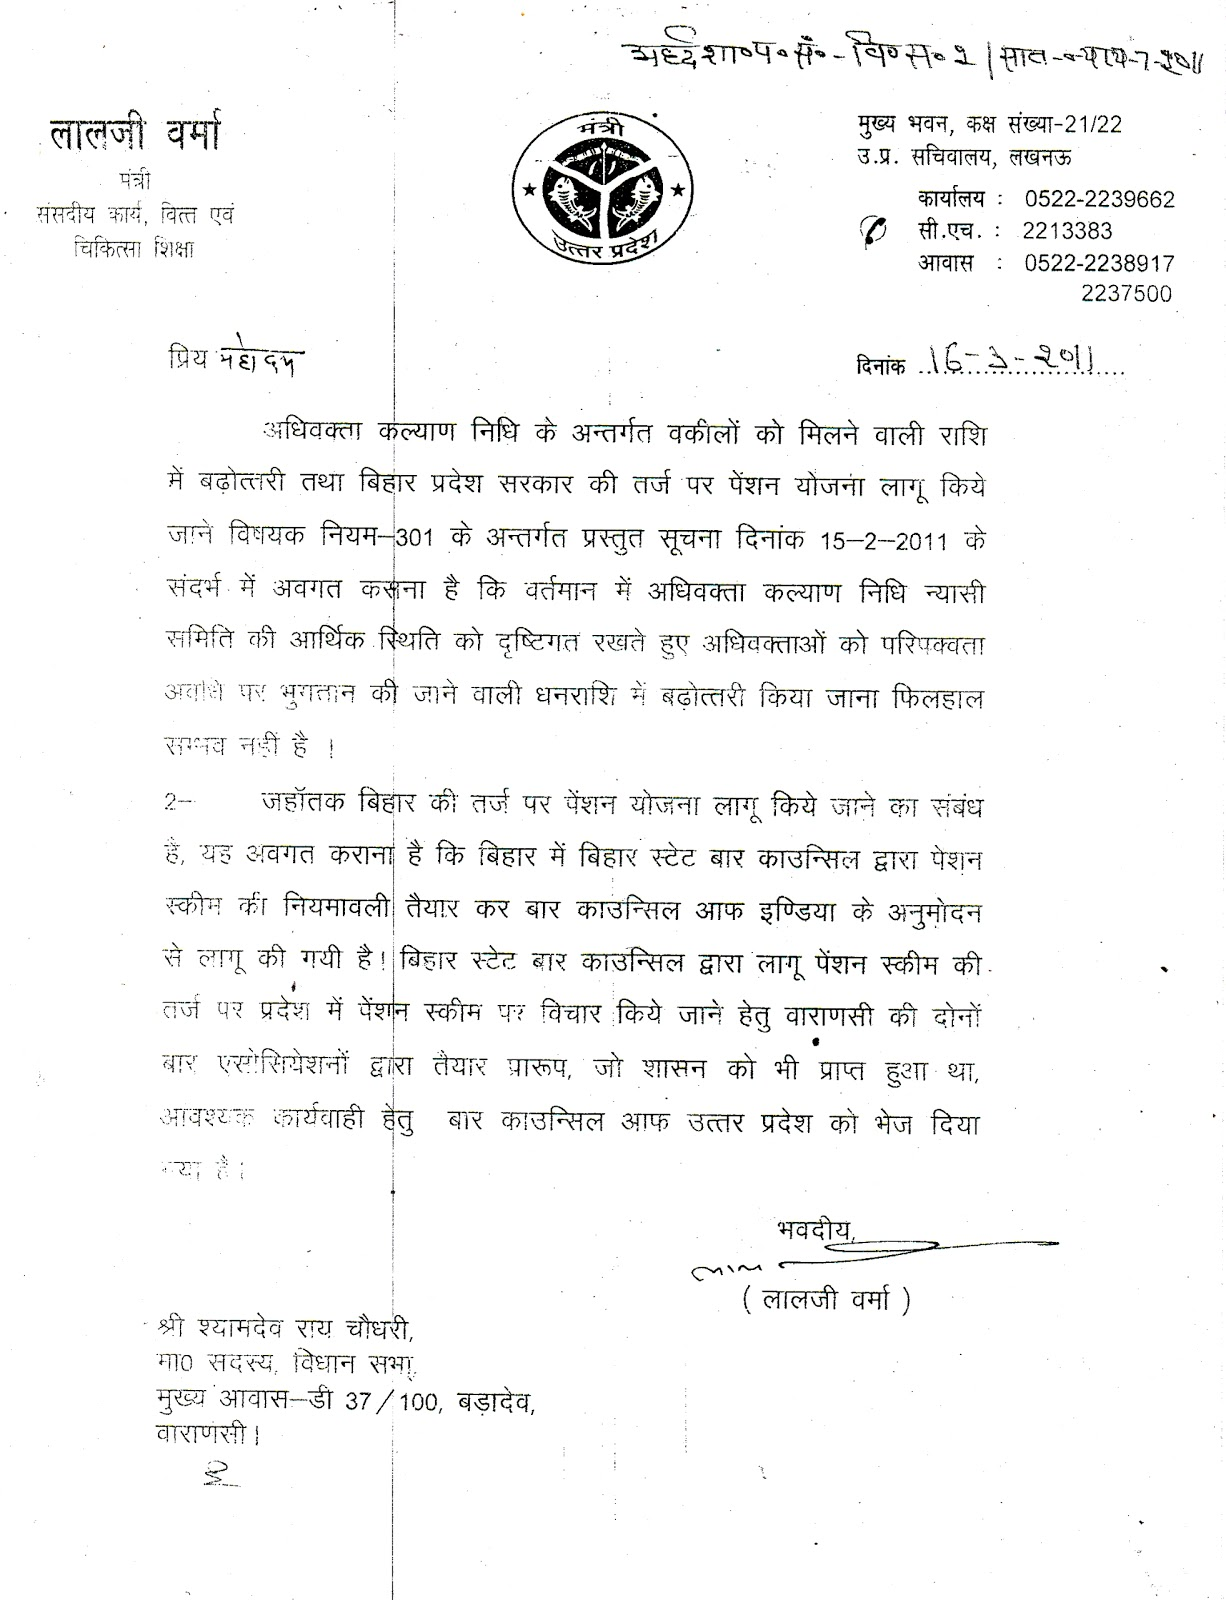 Letter of Shri Lalji Verma, Minister, U.P.Govt. to Varanasi-South MLA on Advocate Pension Scheme